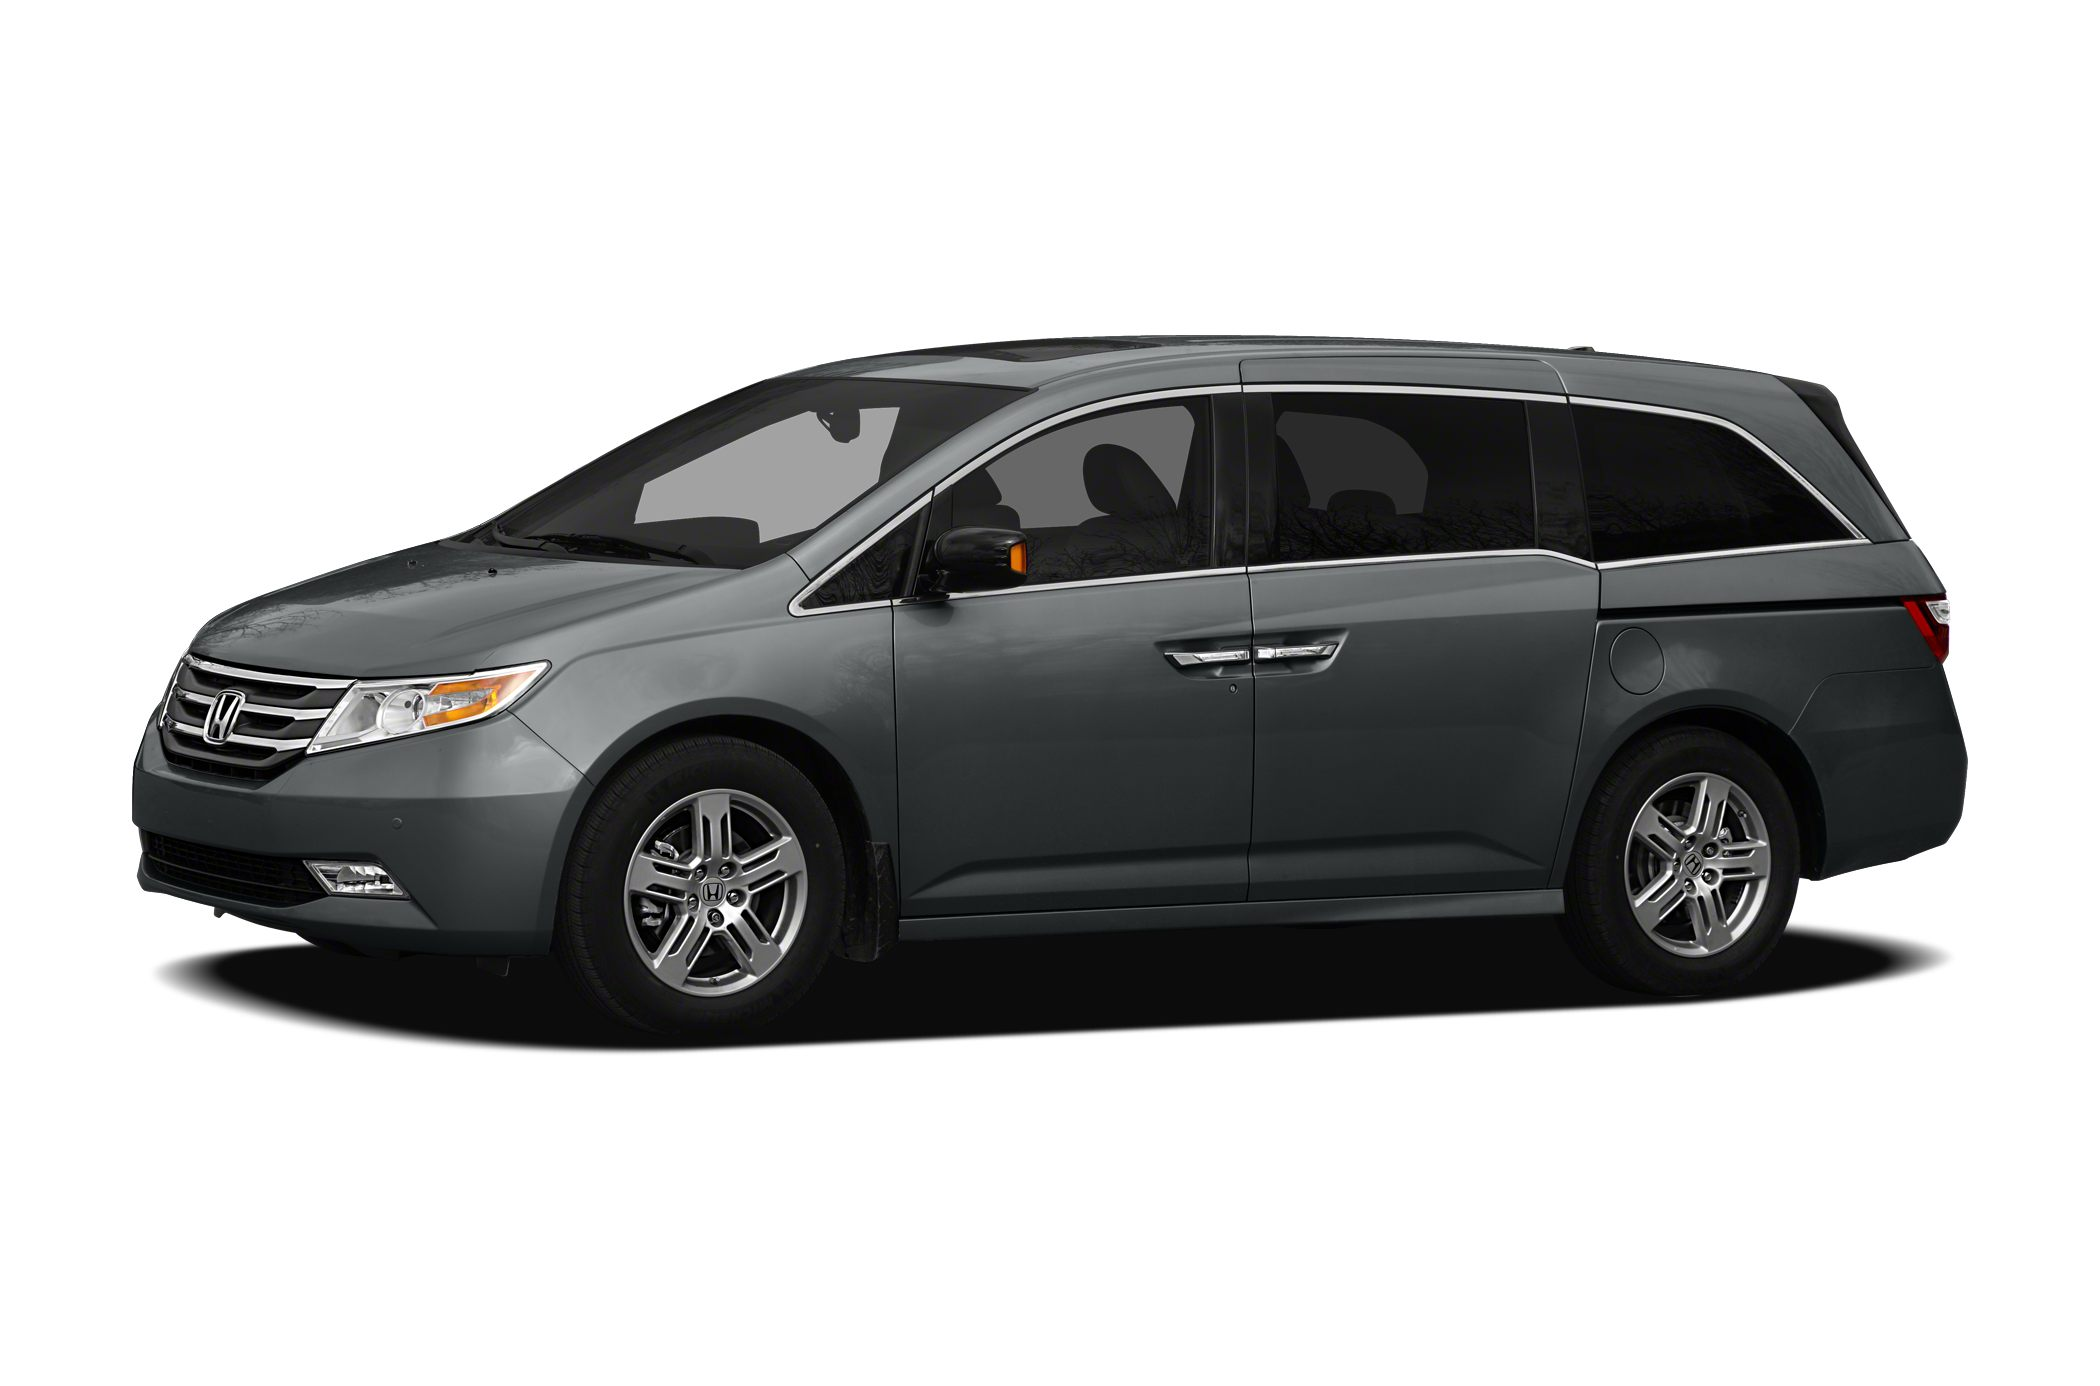 2012 Honda Odyssey EX-L Minivan for sale in Tifton for $26,995 with 51,686 miles.